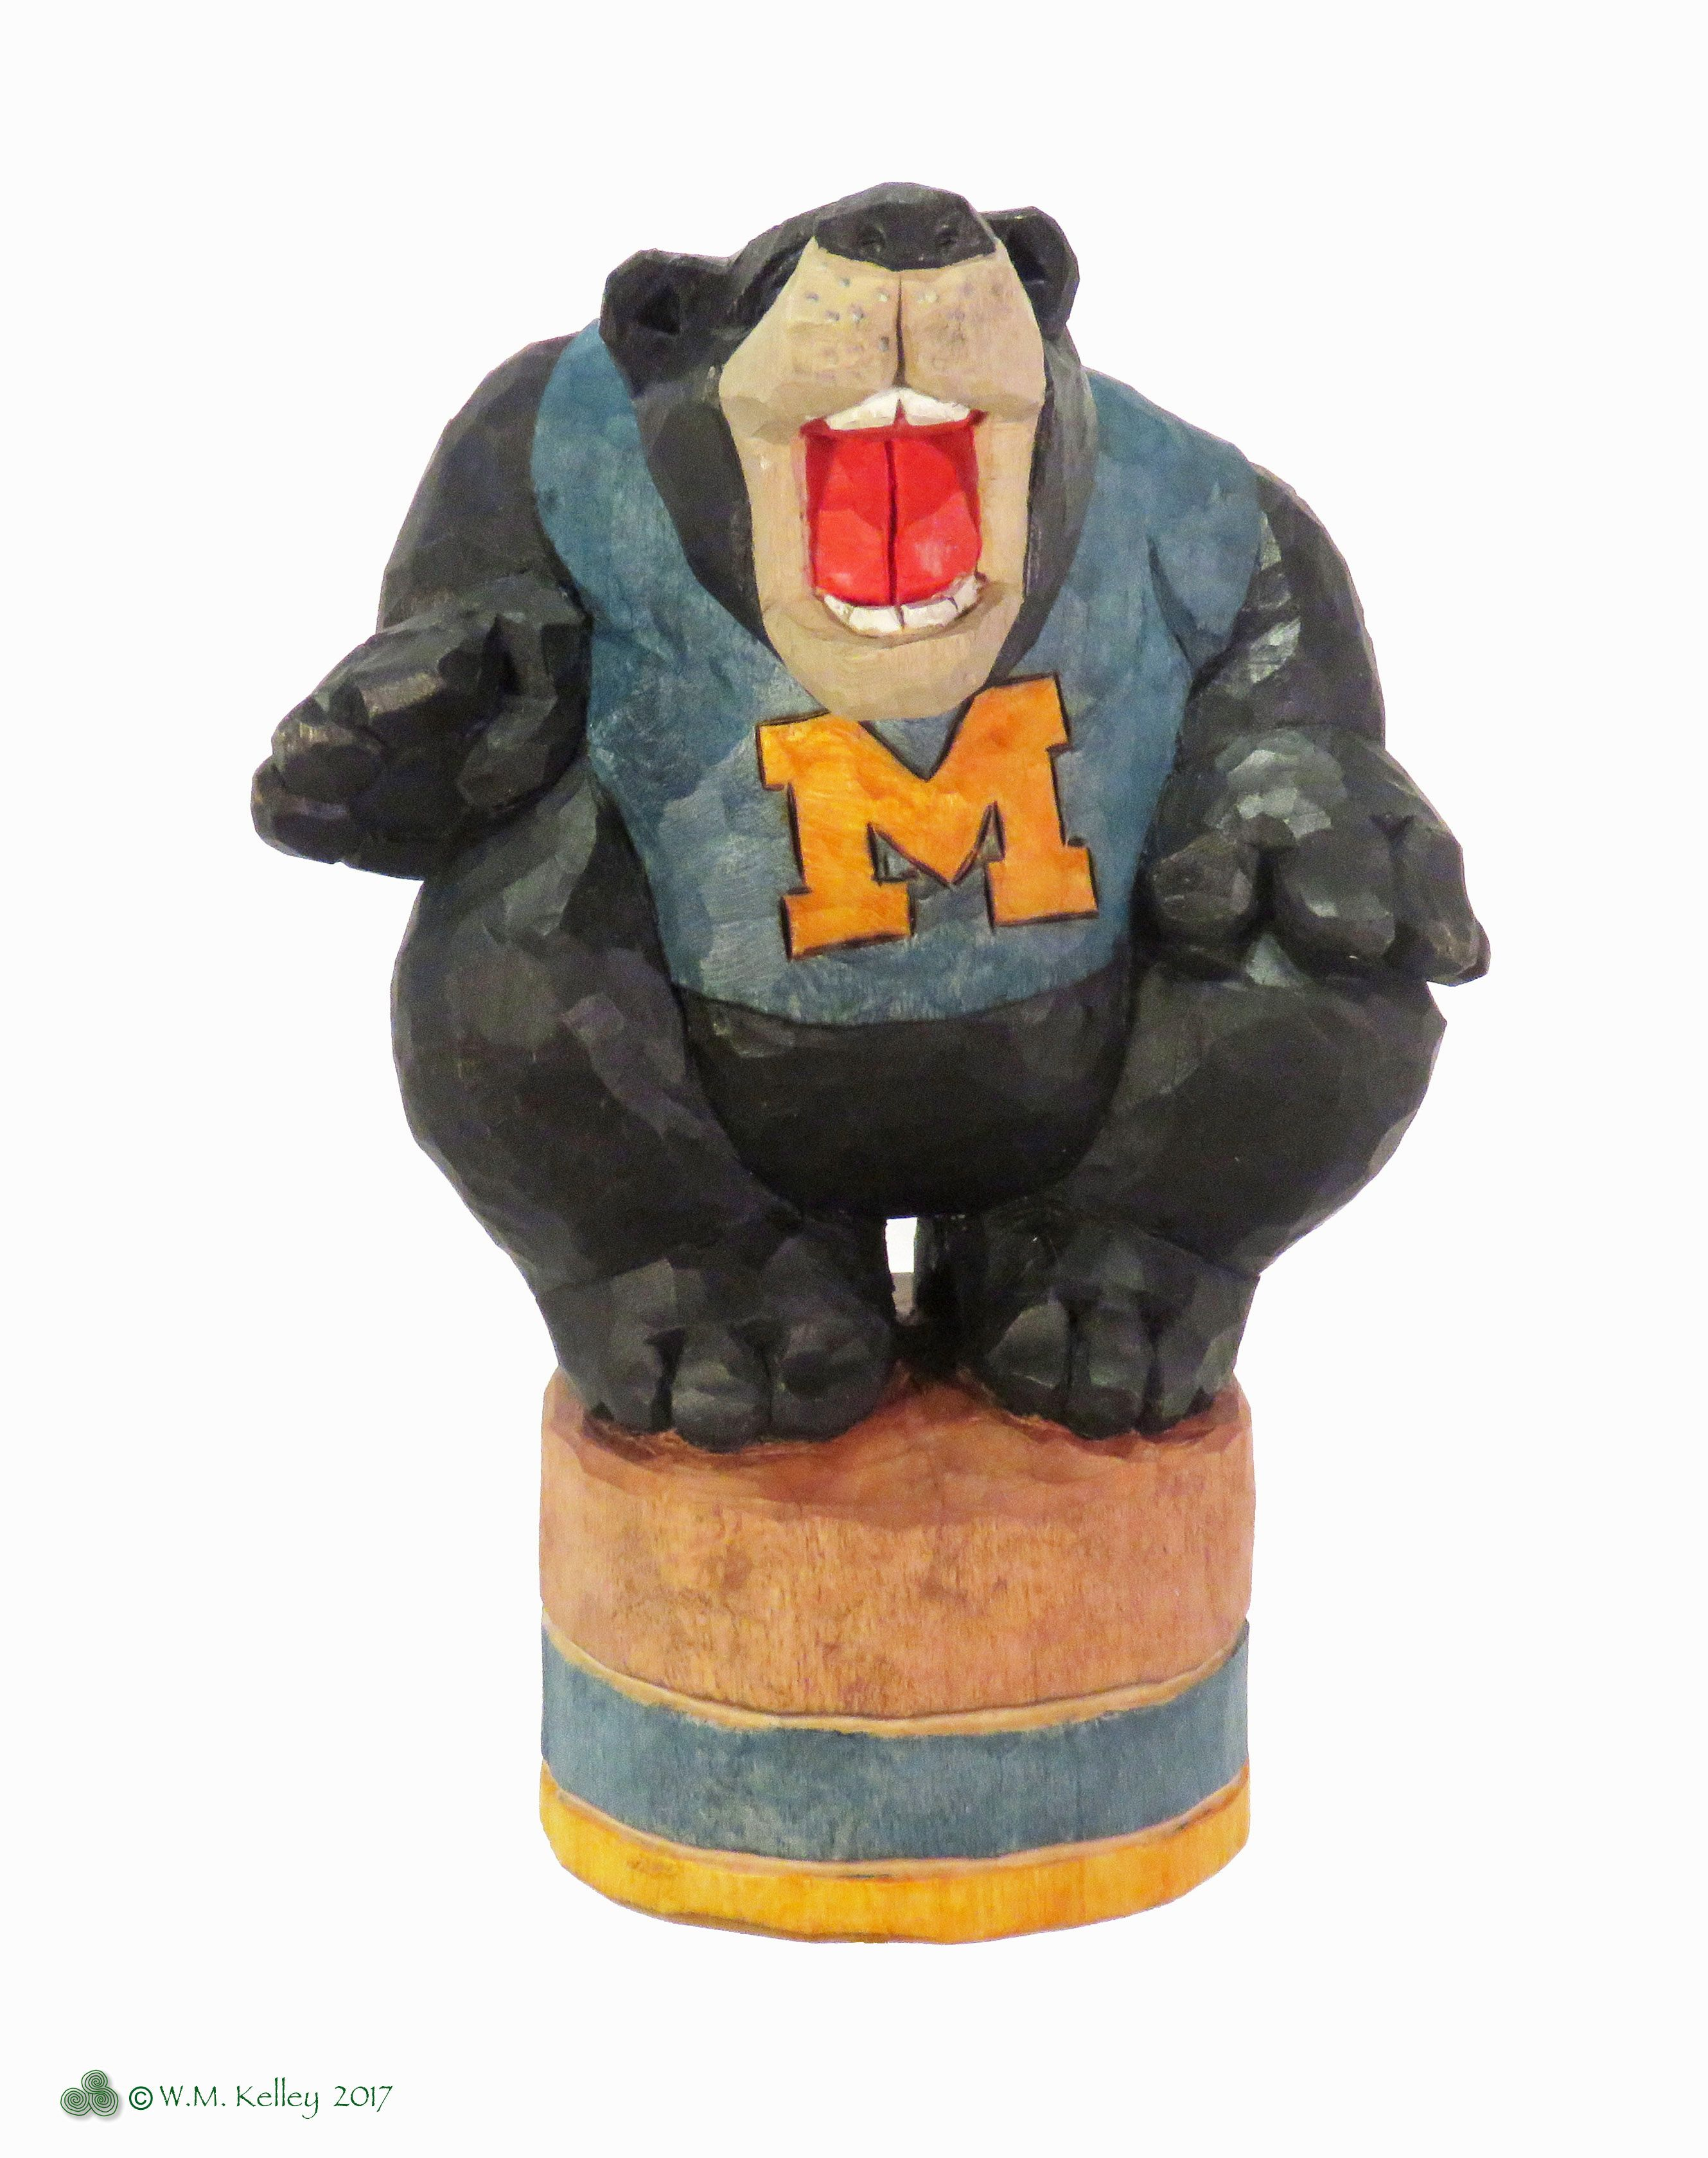 Michigan Black Bear, from Rich Wetherbee rough out, carved